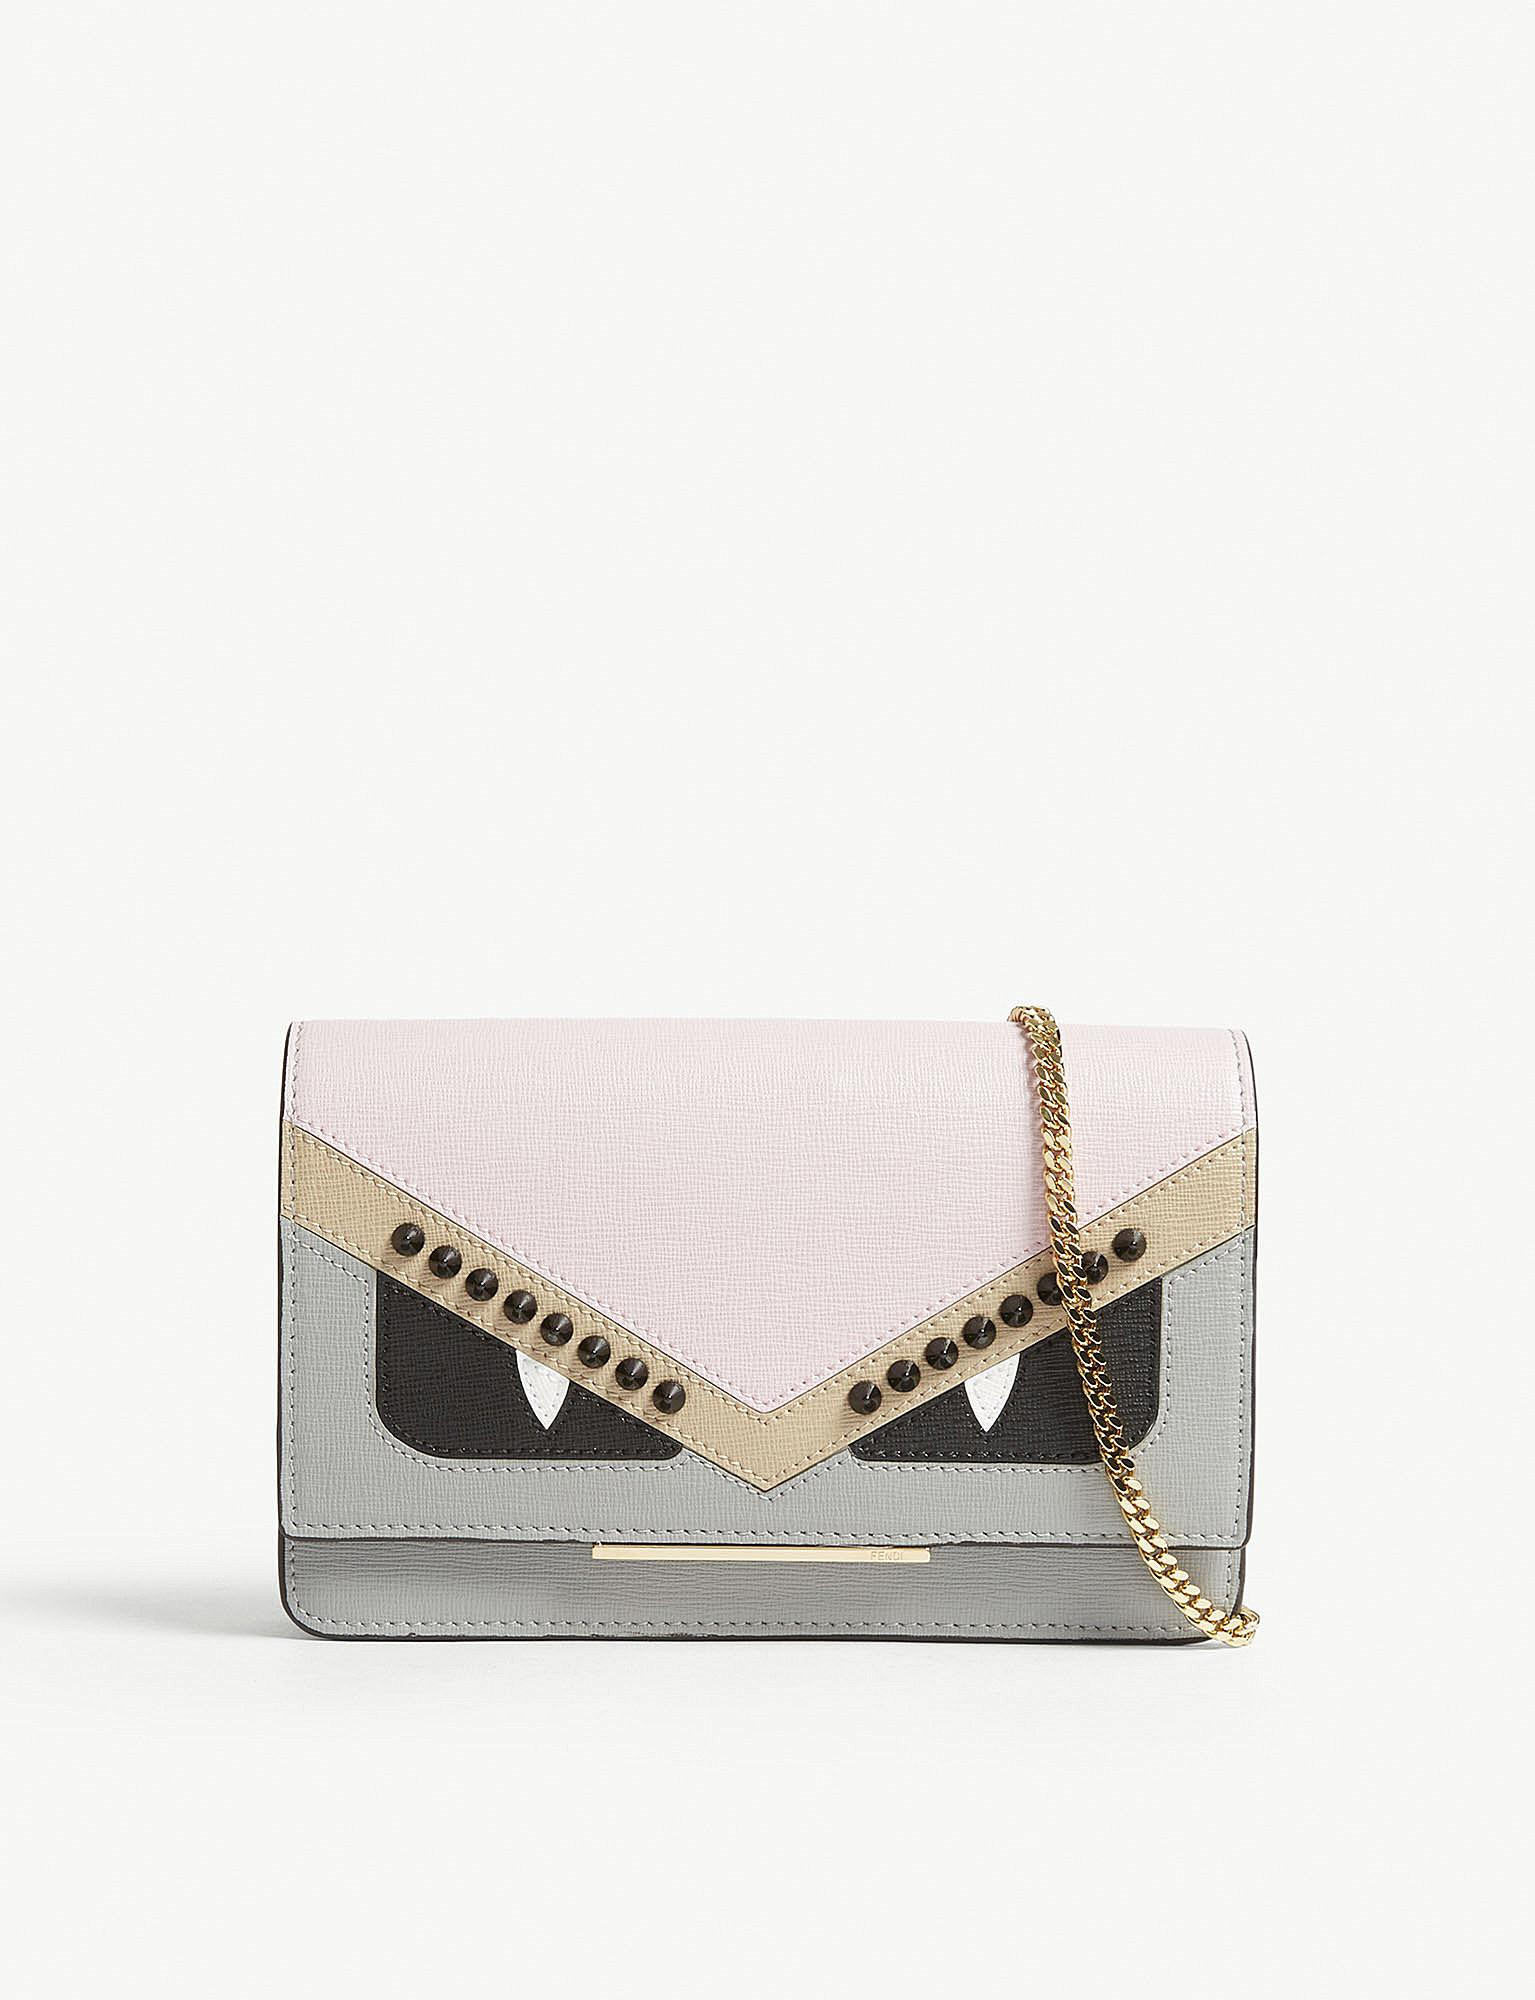 93765d28ee Lyst - Fendi Monster Leather Cross-body Bag in Pink